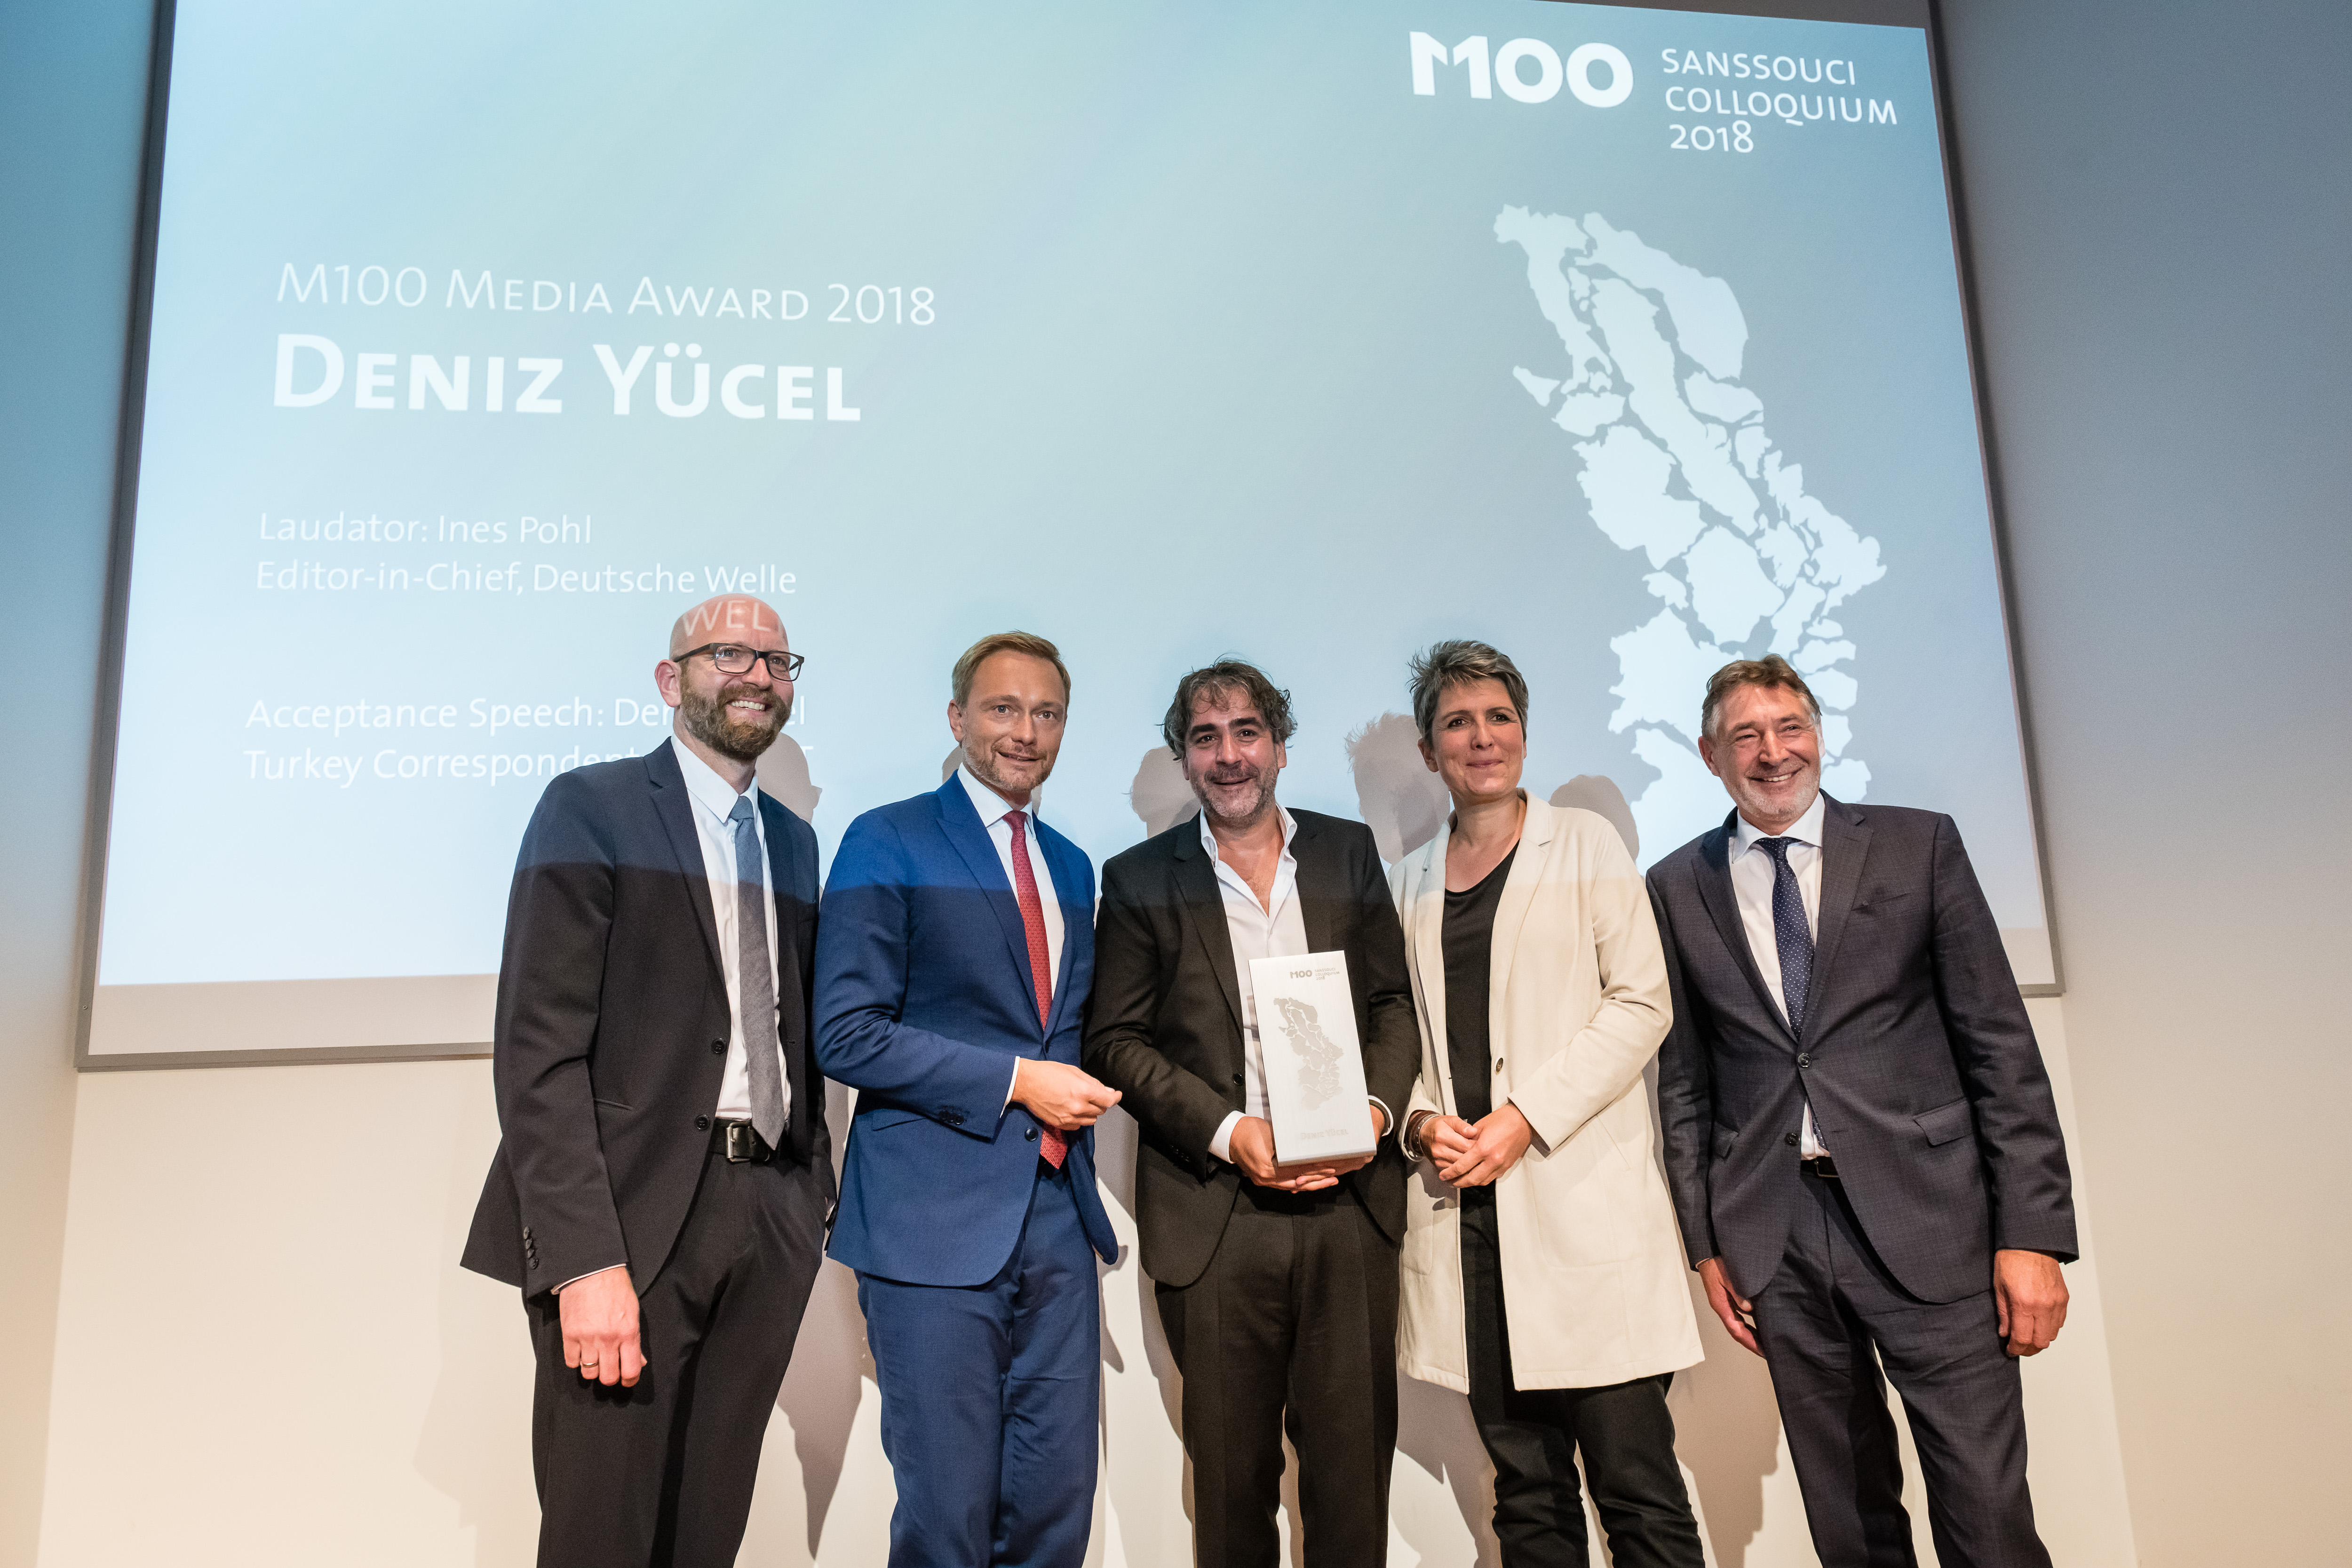 M100 Media Award 2018 with Jann Jakobs, Ines Pohl, Deniz Yücel, Christian Lindner and Moritz van Dülmen